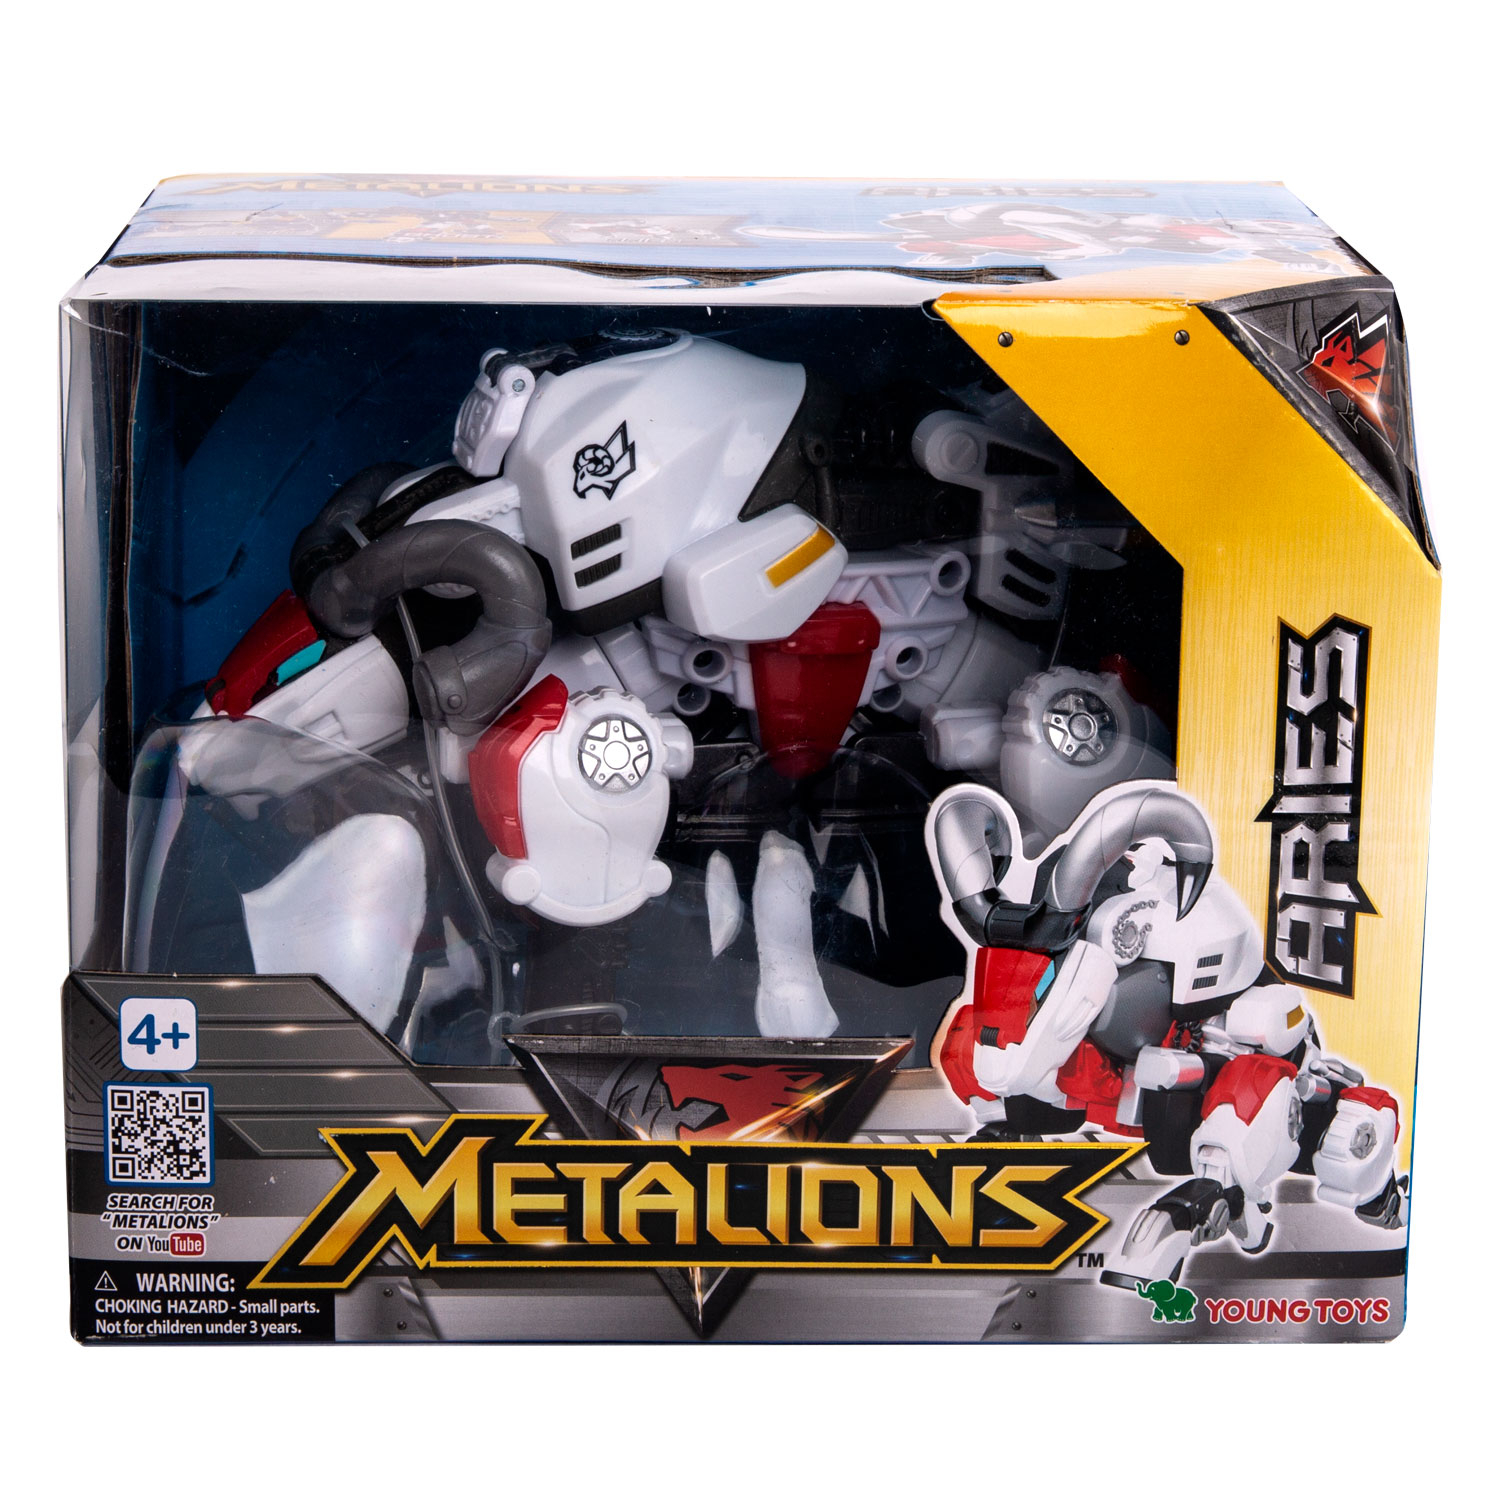 YOUNG TOYS METALIONS Main Aries Action Figure